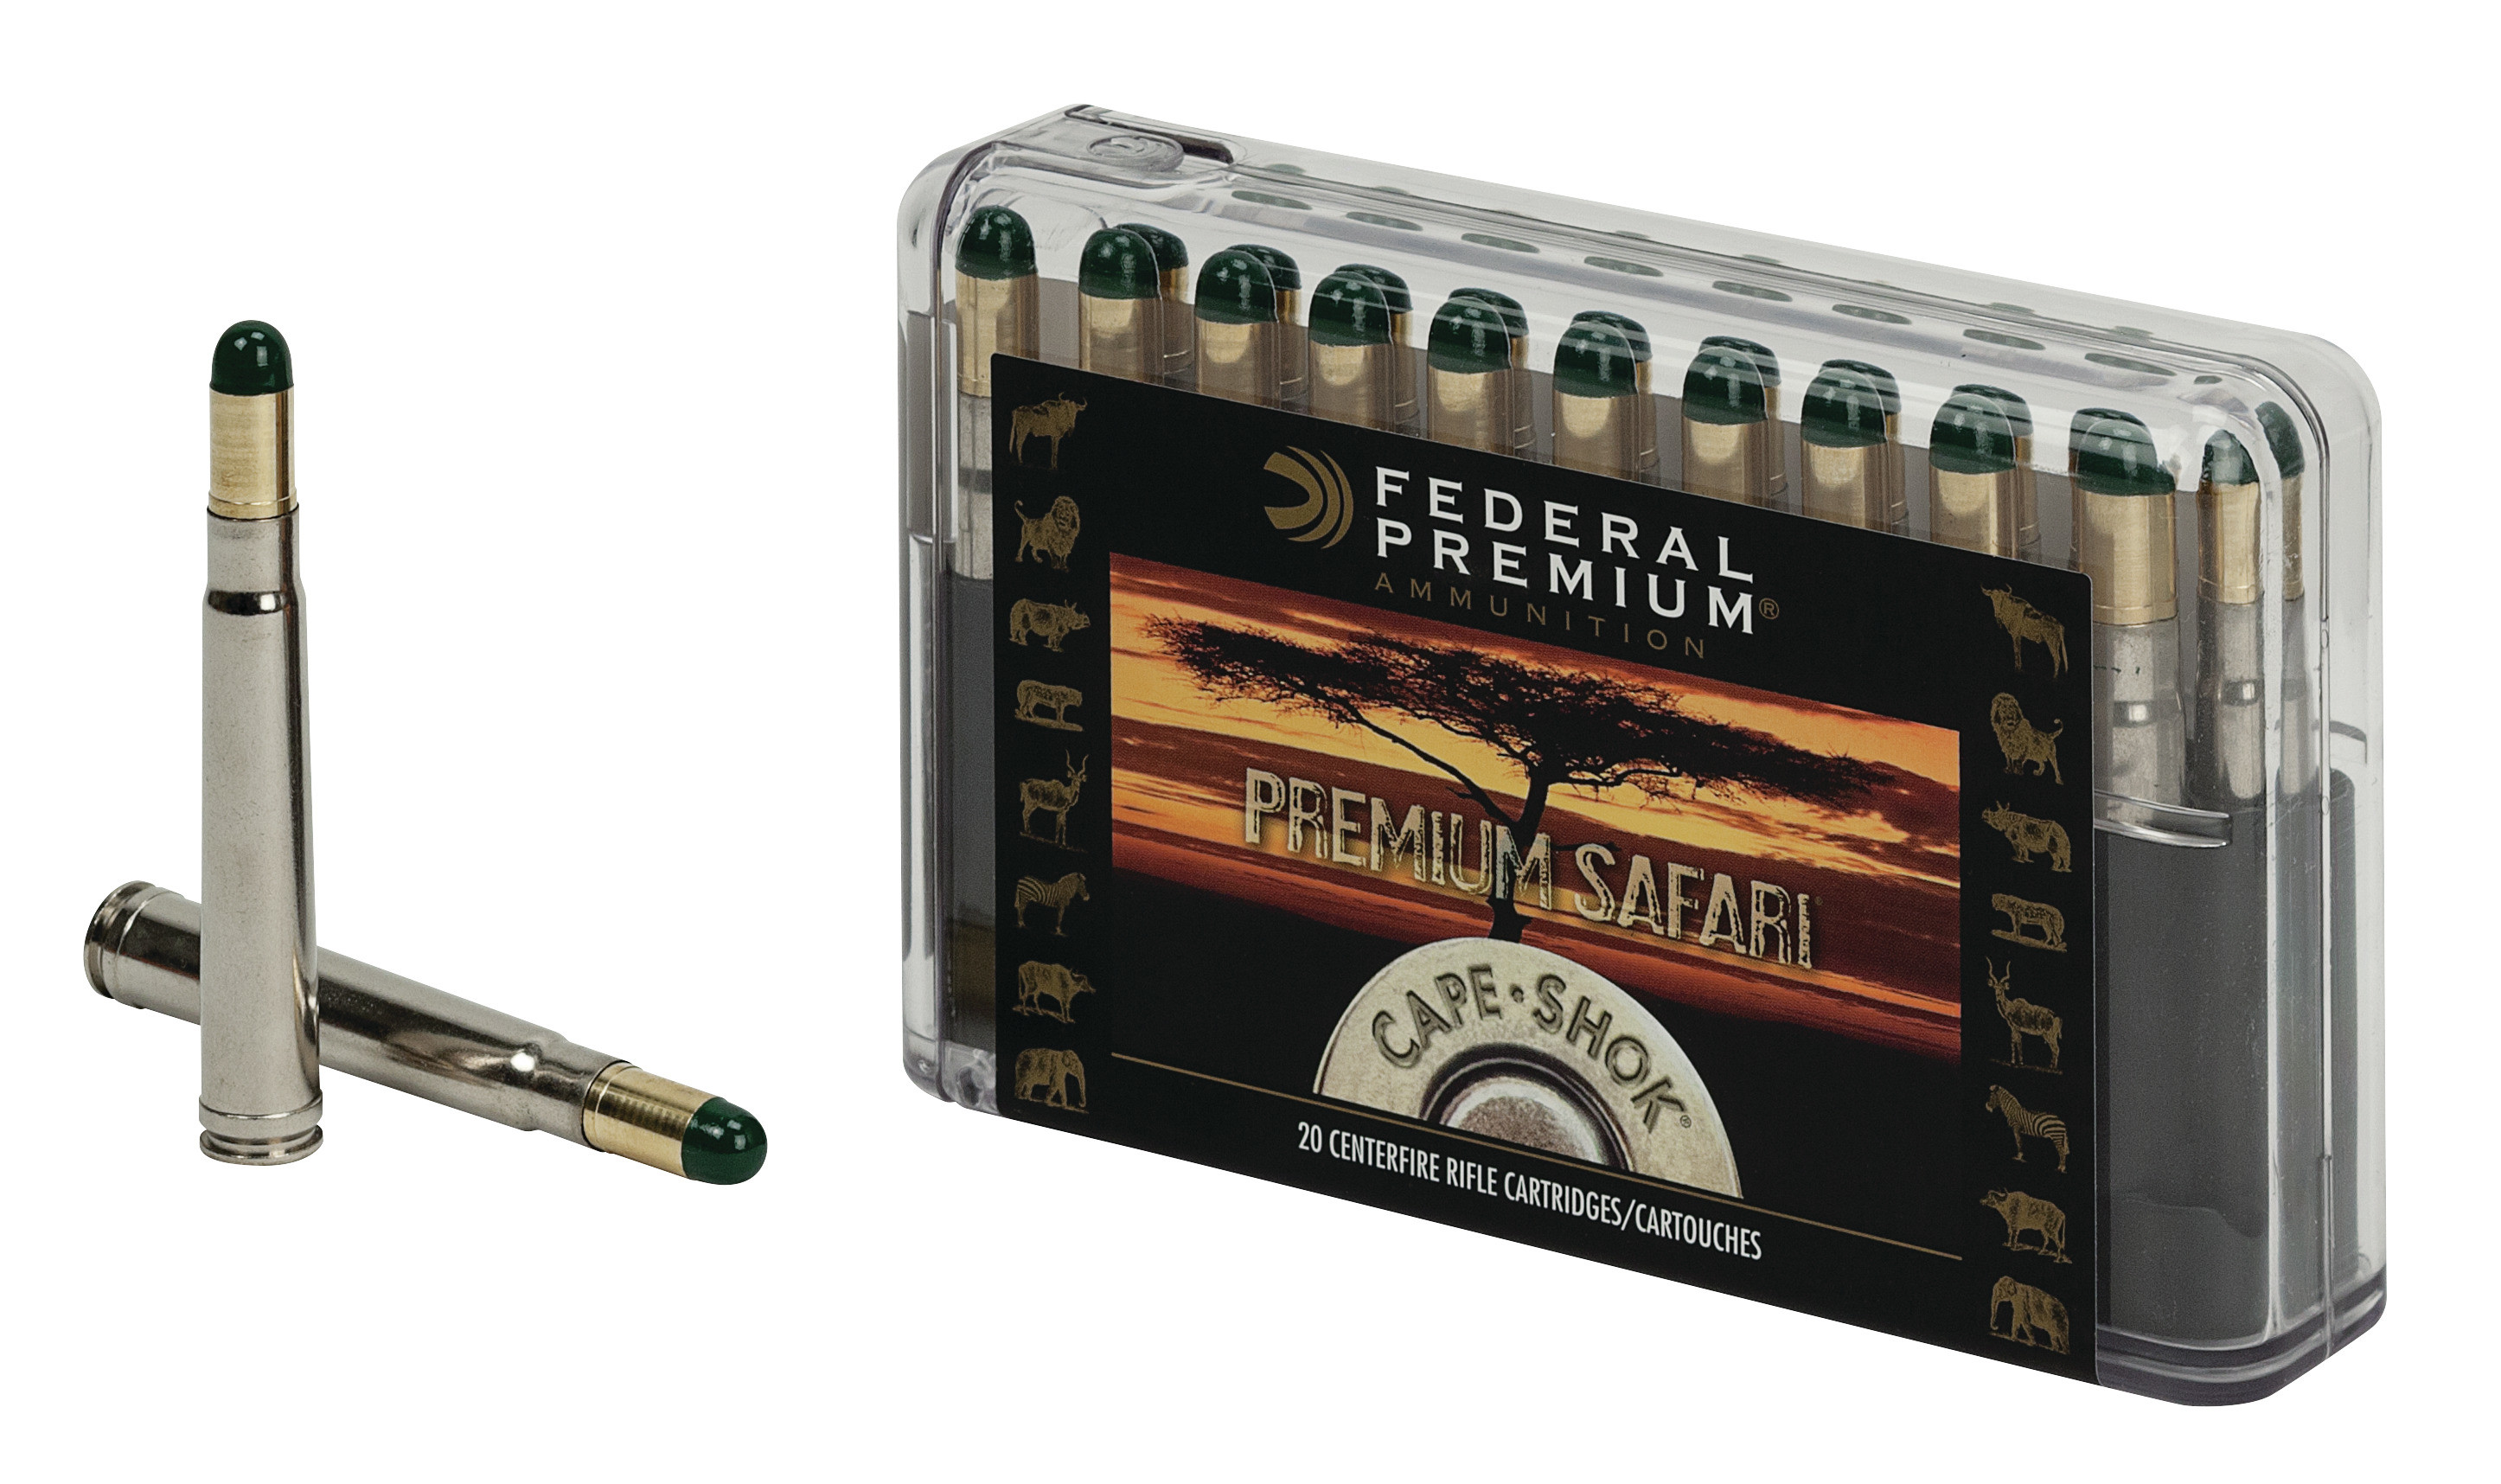 Federal Premium Cape-Shok Ammunition 370 Sako Magnum 286GR Woodleigh Hydro Solid Round Nose Per 20